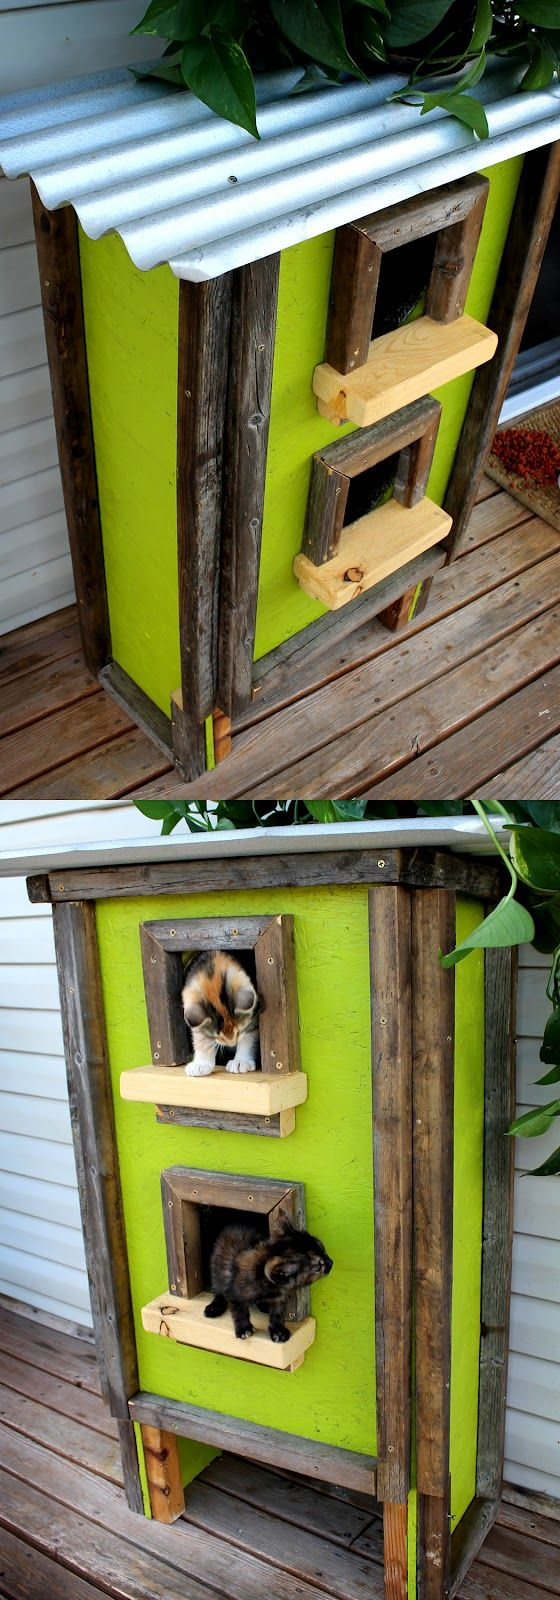 Customized Outdoor Cat House she doesn't give any how